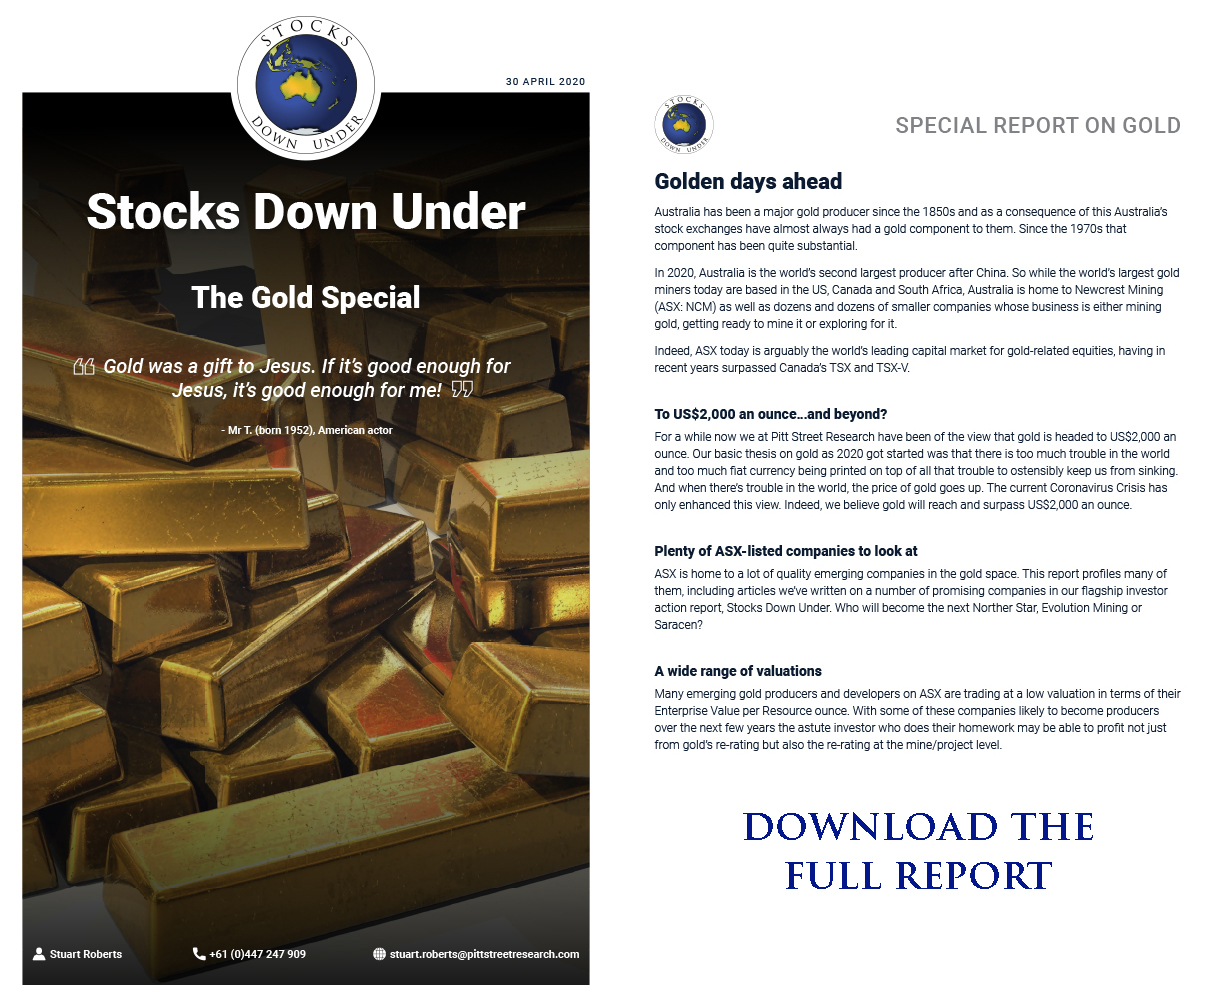 Stocks-Down-Under-Gold-report-30-04-2020-download